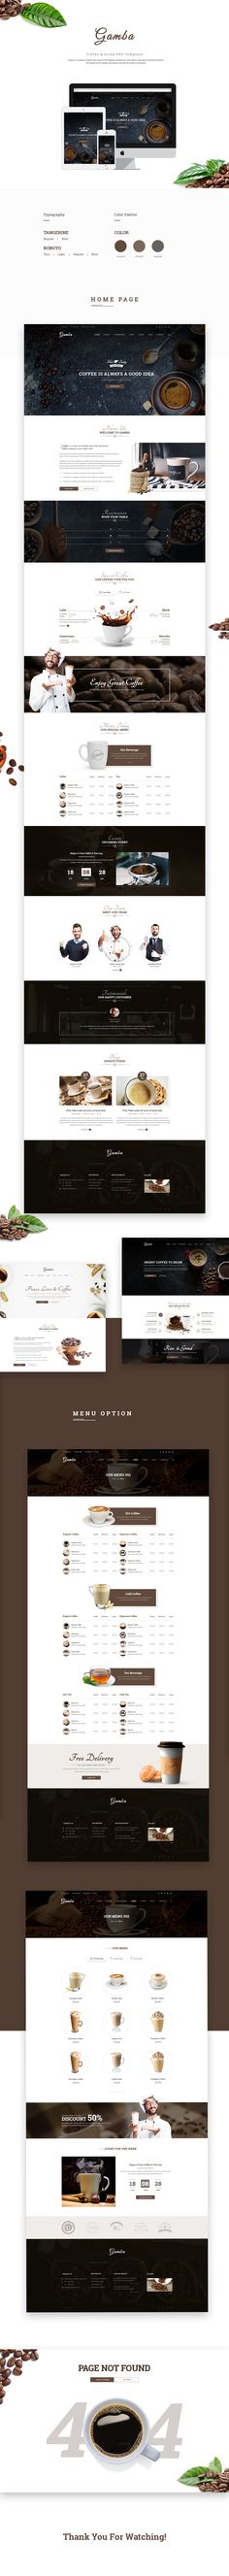 Gamba - Coffee & Drink PSD Template - Restaurants & Cafes EntertainmentScreenshots Share Facebook Google Plus Twitter PinterestAdd to FavoritesAdd to CollectionGamba is a powerful, modern and creative PSD template, designed for food, bakery, cafe, pu…